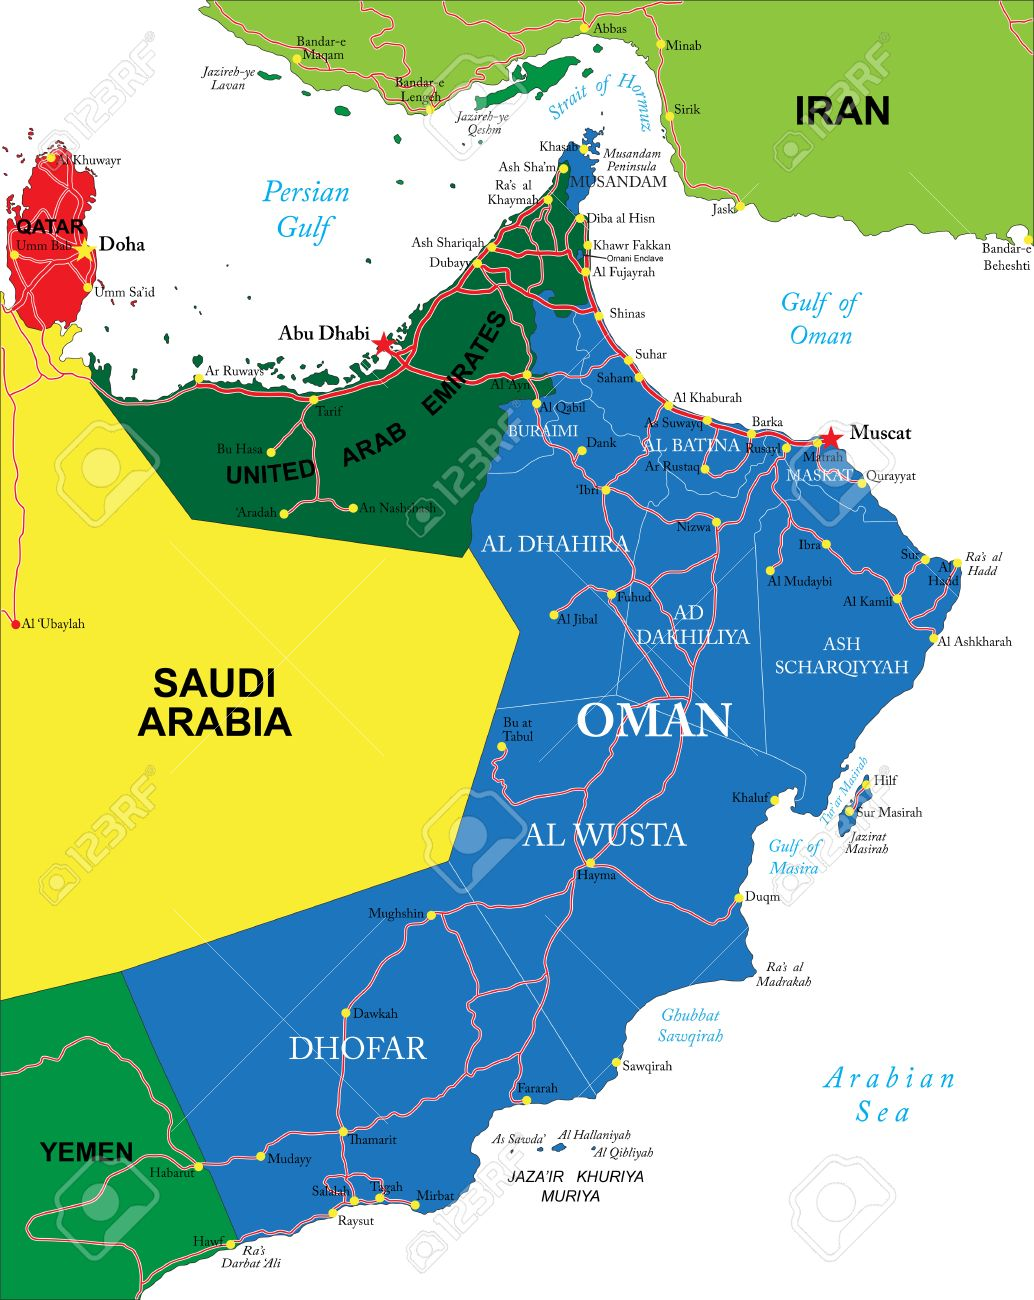 Oman map Map In Oman on map in cyprus, map in jamaica, map in botswana, map in nigeria, map in somalia, map in guatemala, map in nicaragua, map in burma, map in himalayas, map in mali, map in mongolia, map in belgium, map in sudan, map in bhutan, map in denmark, map in netherlands, map in yemen, map in iceland, map in honduras, map in mauritius,